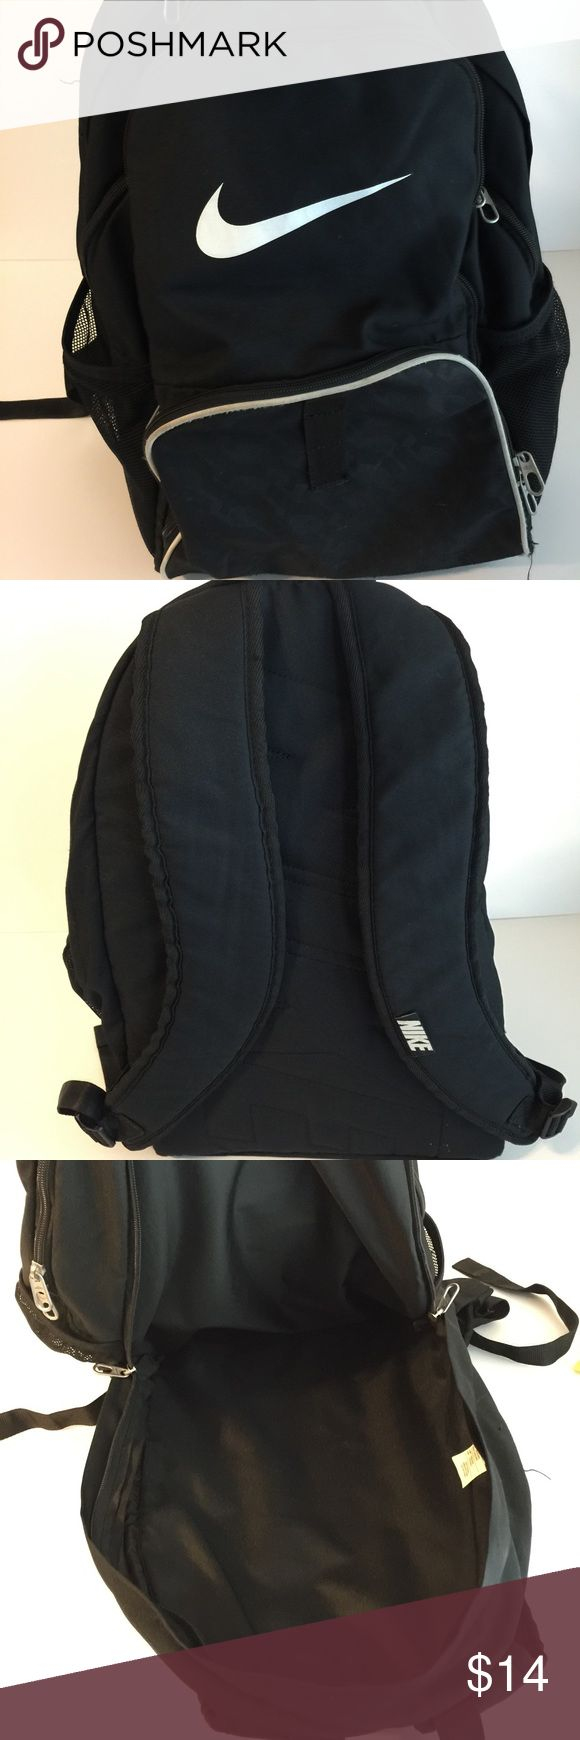 Black NIKE Backpack Black and white NIKE backpack, padded straps, handle on top, netted water bottle pockets on each side, 4 zippered compartments, good condition and clean. One small hole in the front small pocket. Smoke free home. Nike Bags Backpacks